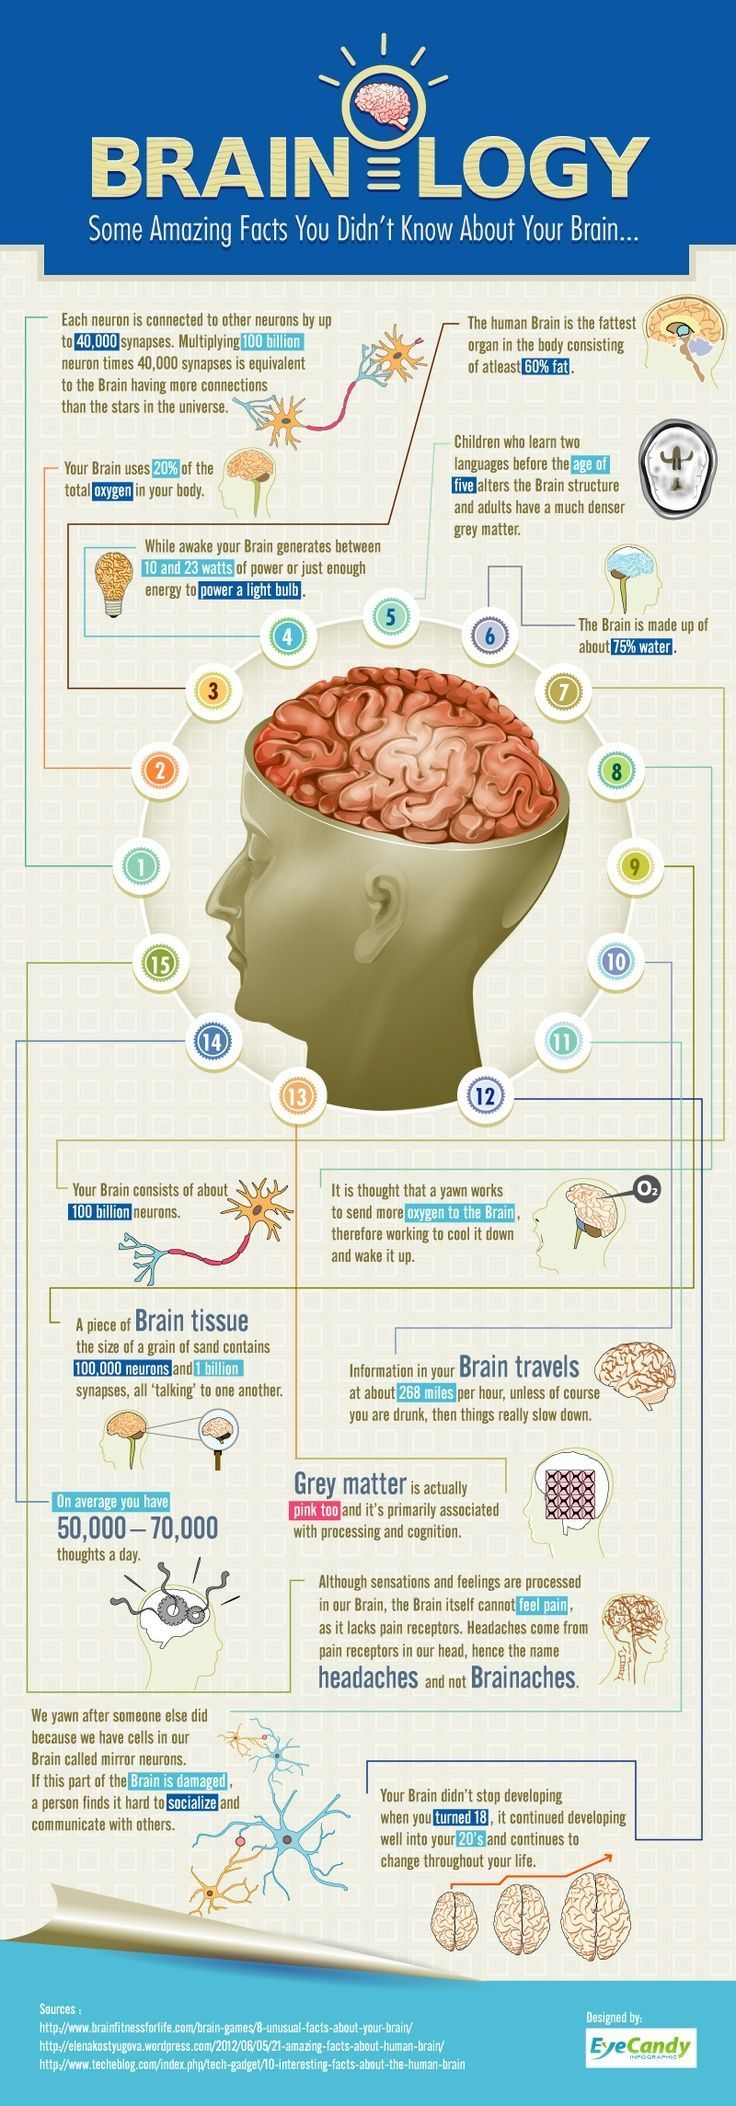 Some amazing facts you didn't know about your brain #infographic